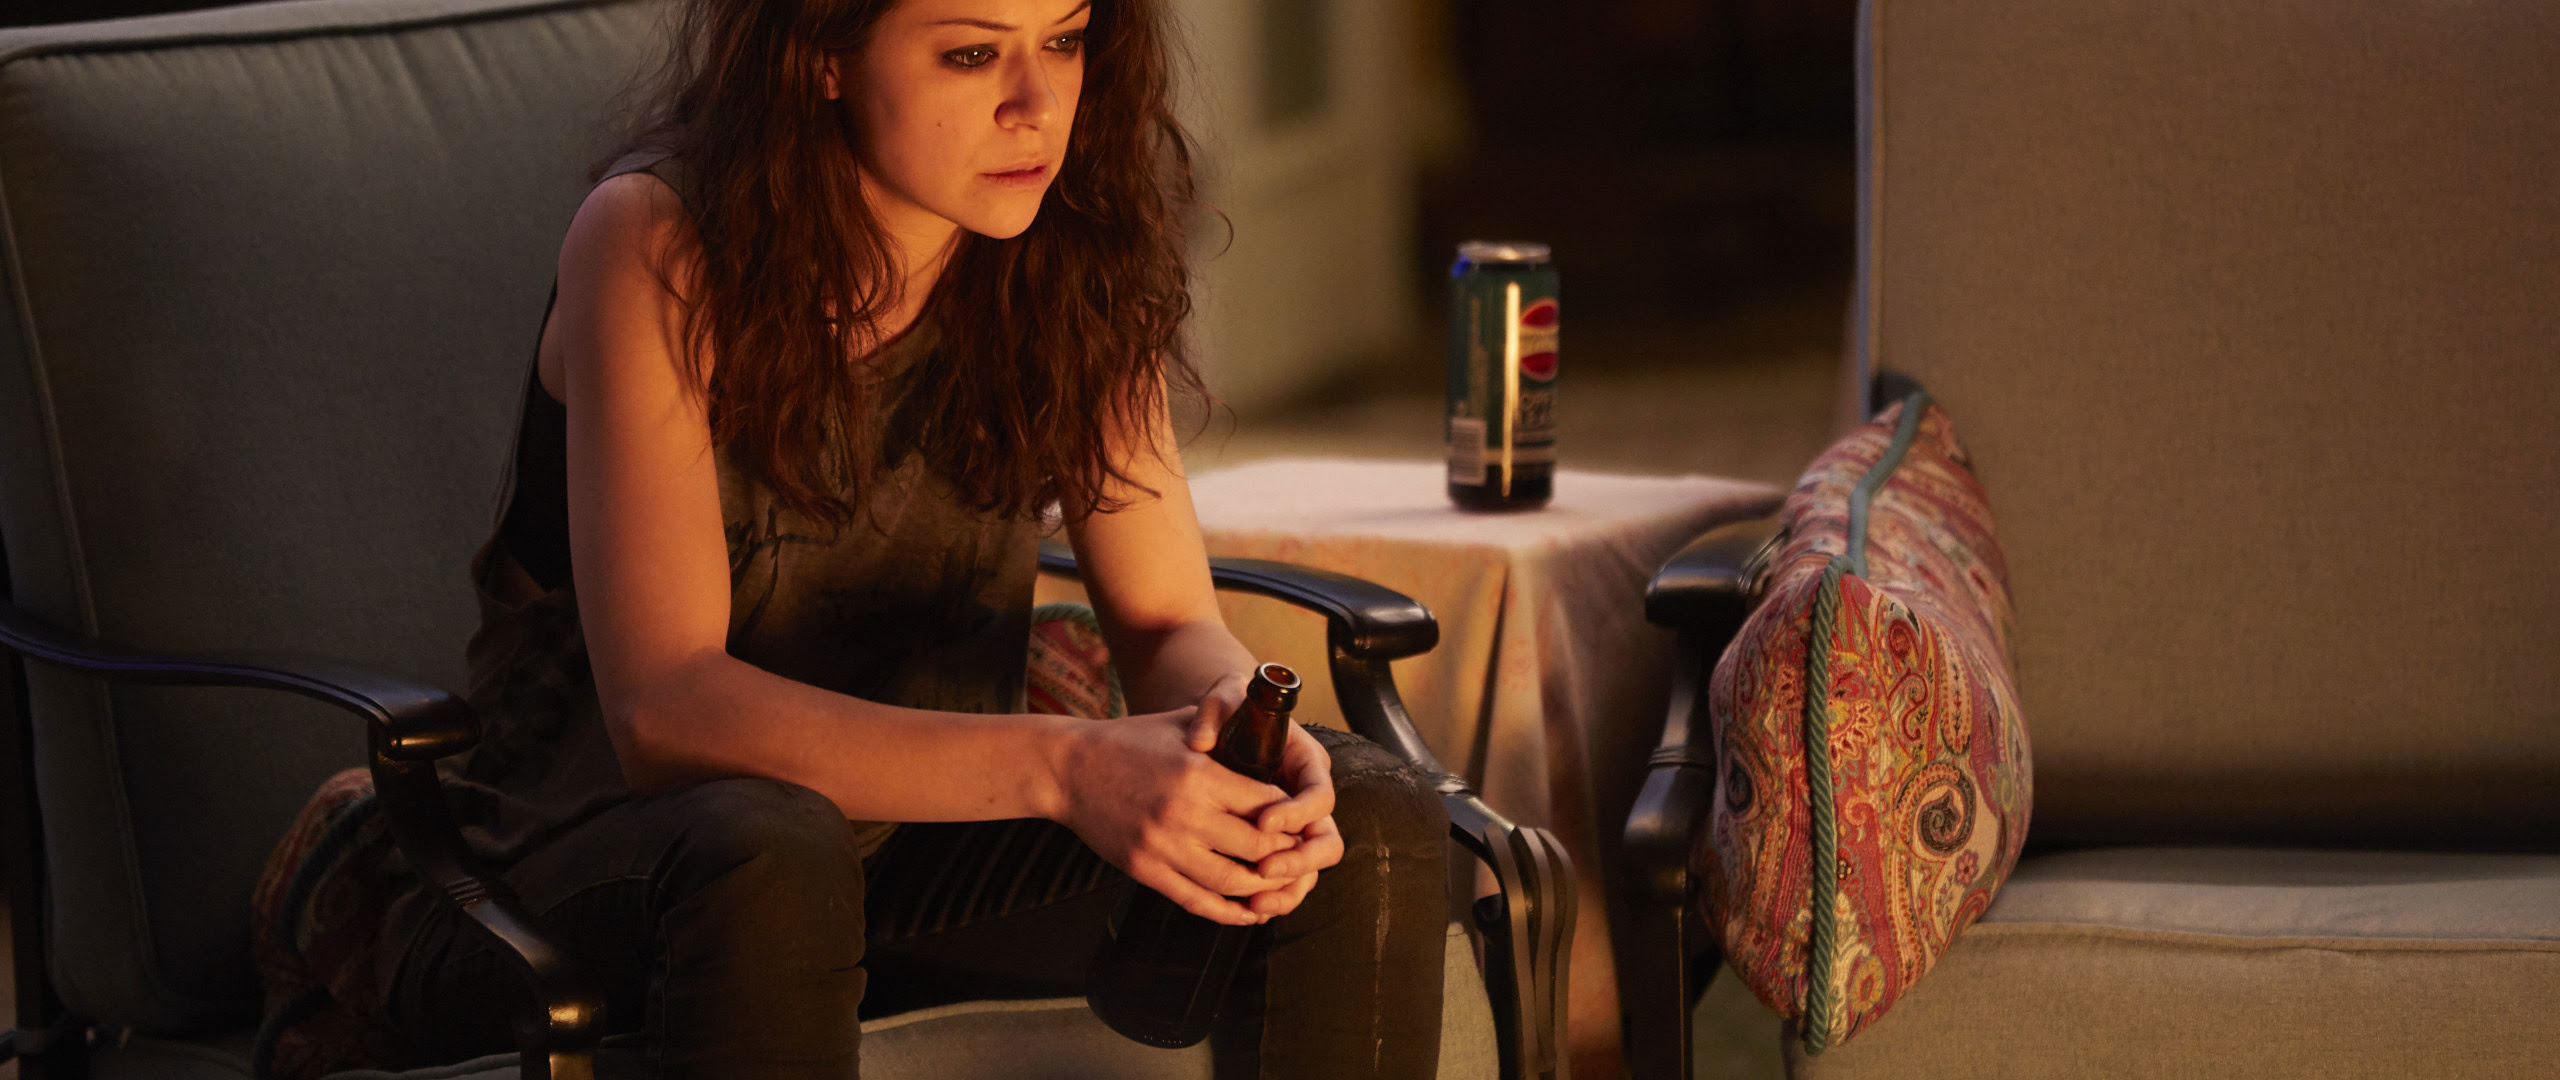 Orphan Black Wallpapers 70 Images